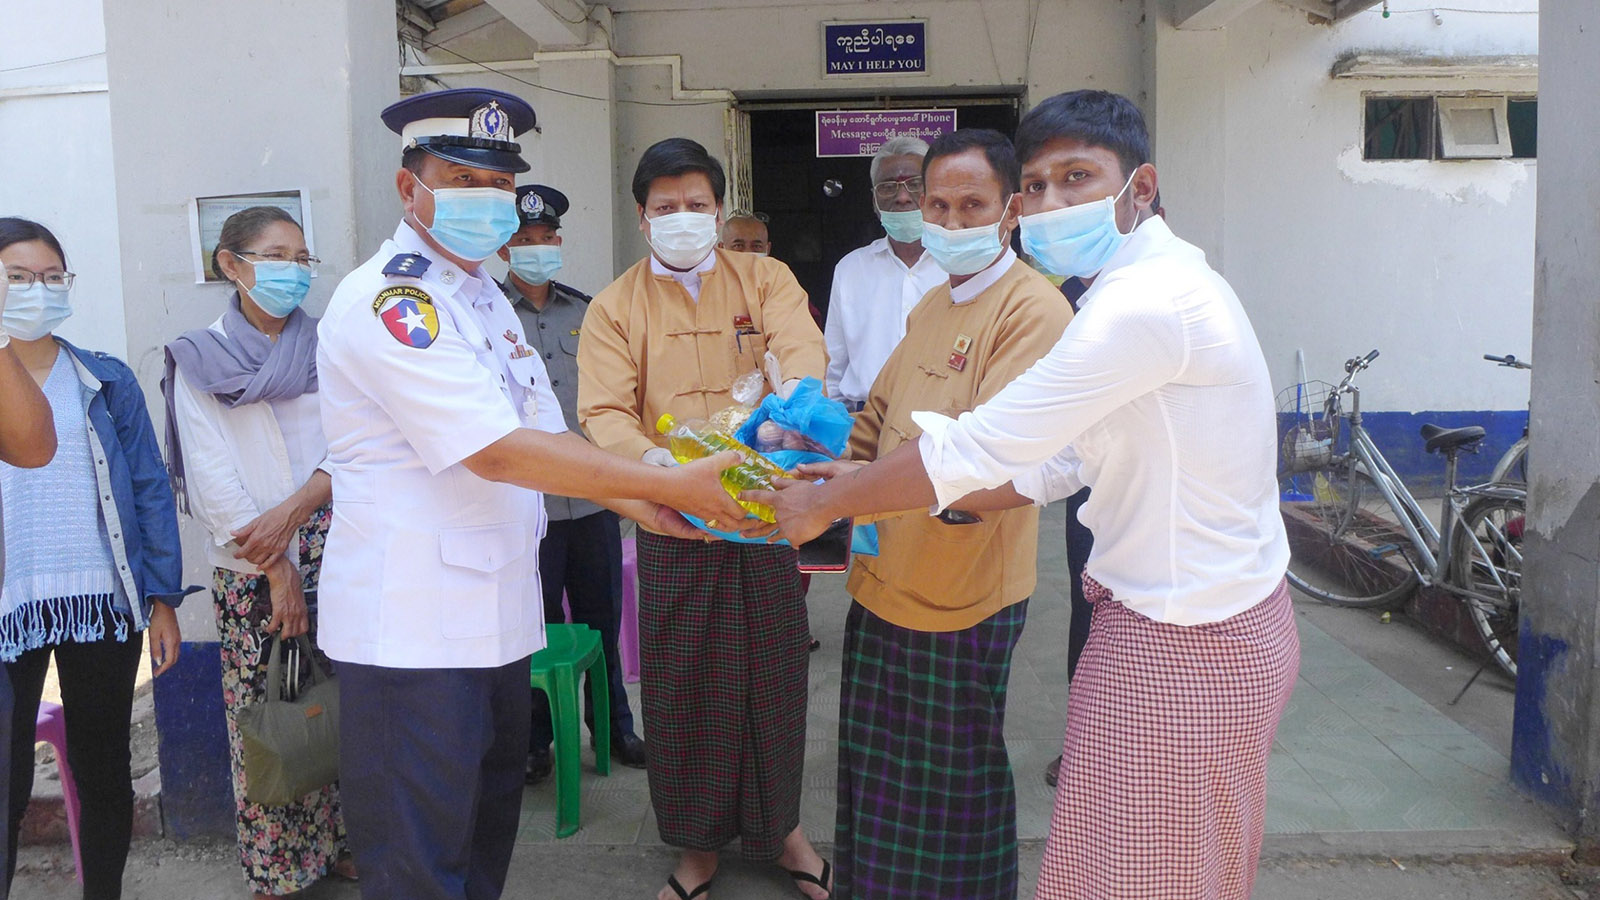 A man receives food aid from authorities in Dala Township.  Photo: Naing Lin Kyaw